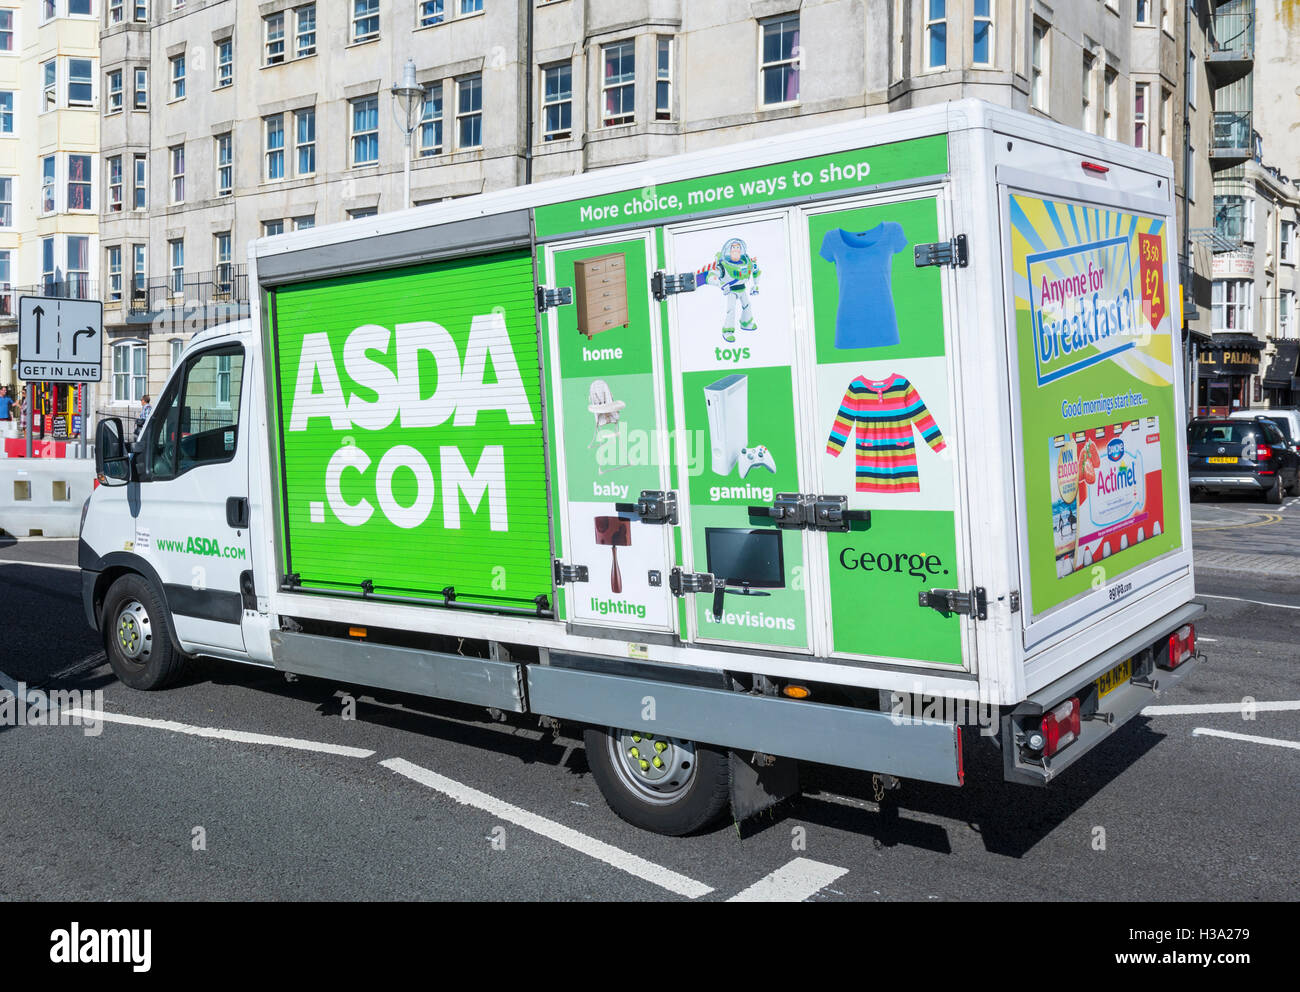 The Asda delivery pass is a very handy offer if you regularly order groceries from Asda. If you sign up for 12 months for £55, this works out to be £ per month - and that means you can get.